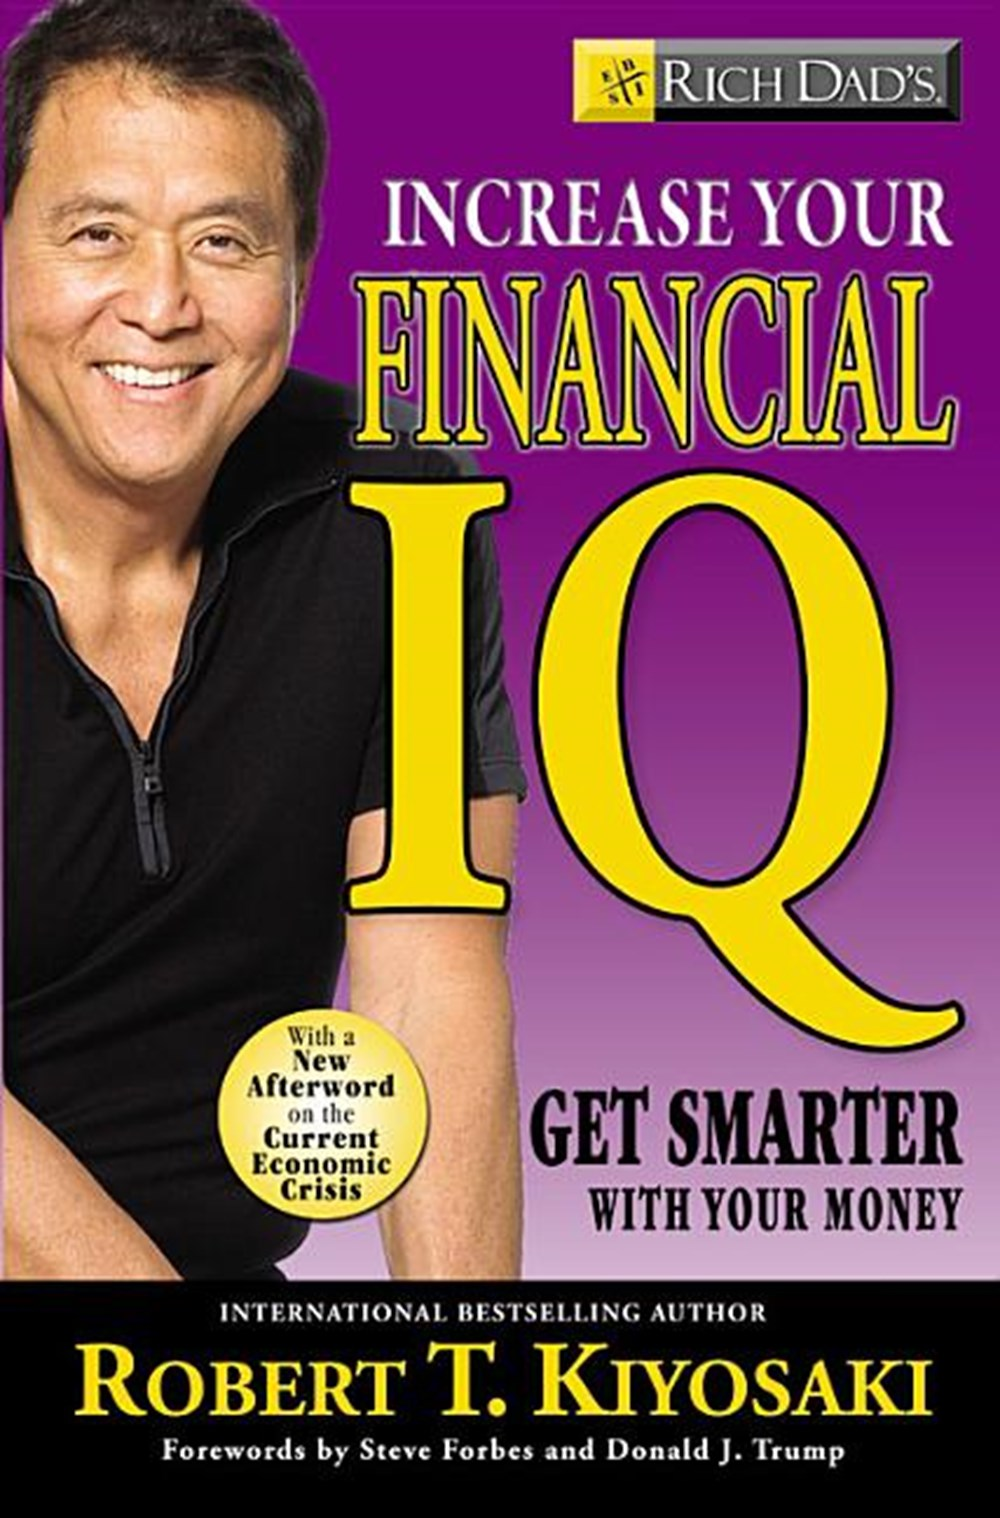 Rich Dad's Increase Your Financial IQ Get Smarter with Your Money